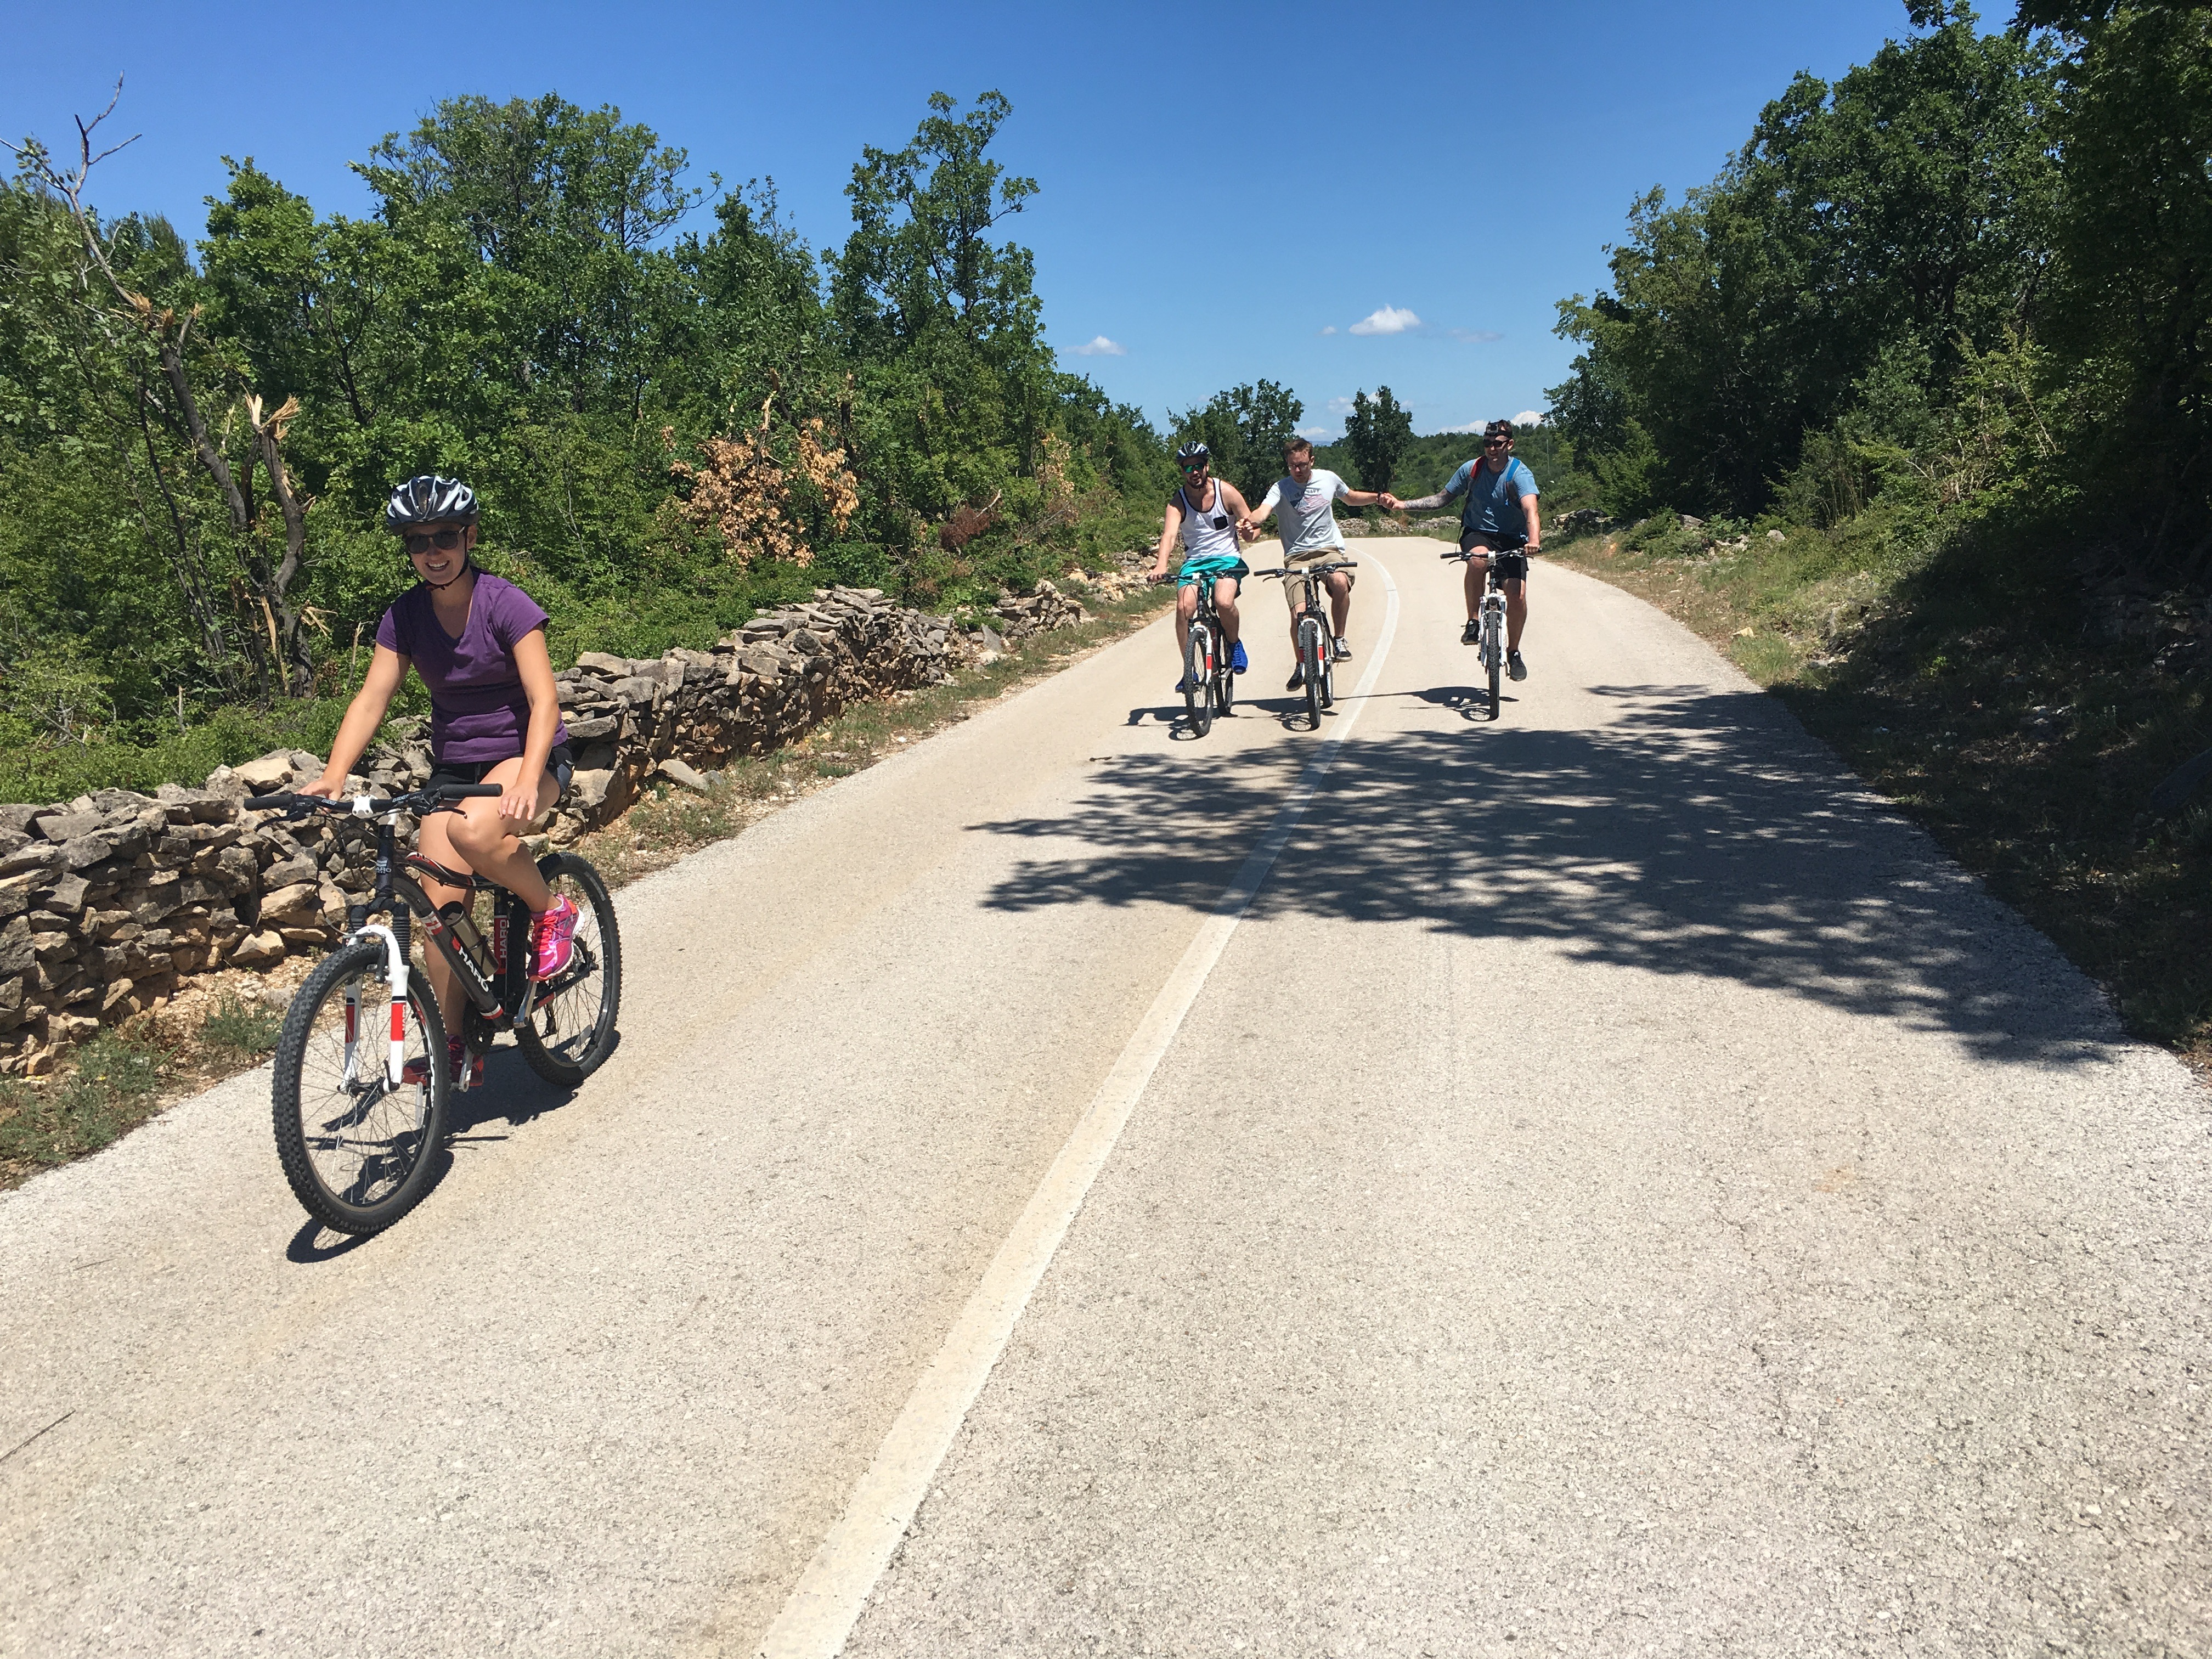 Dalmatia a great cycling destination | Jamming Adventures